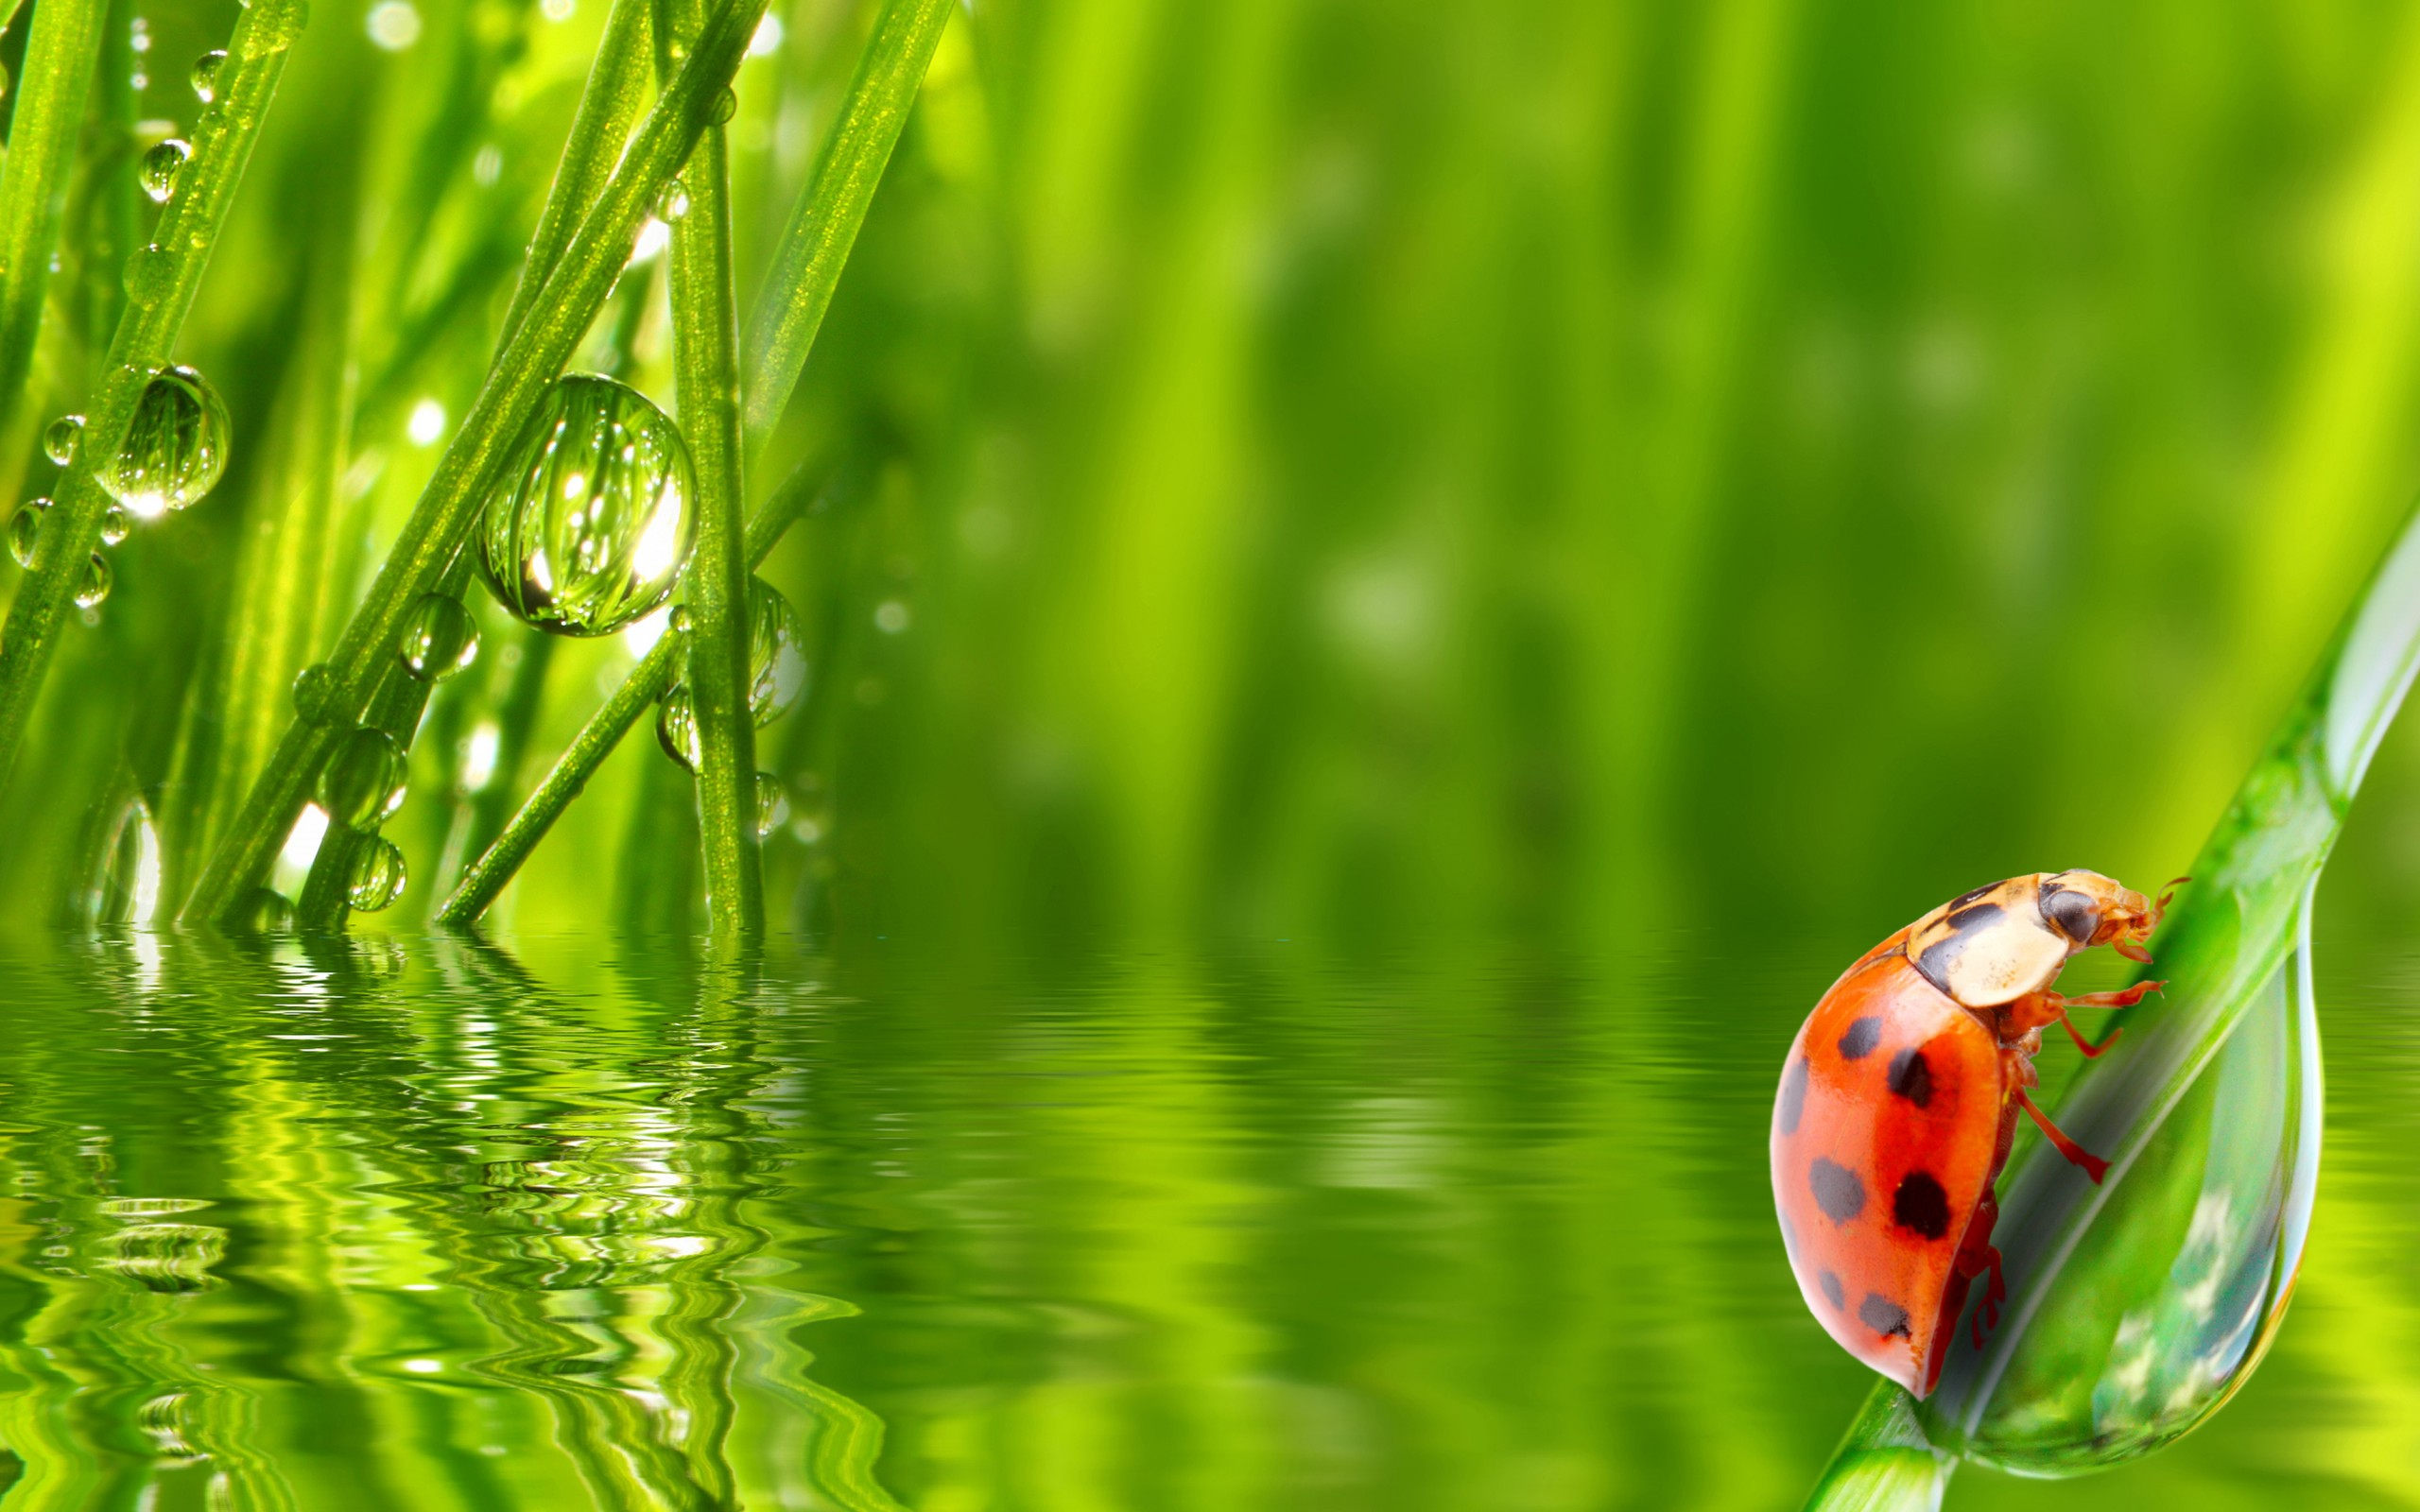 ladybug insect grass water dew morning drop wallpaper background 2560x1600